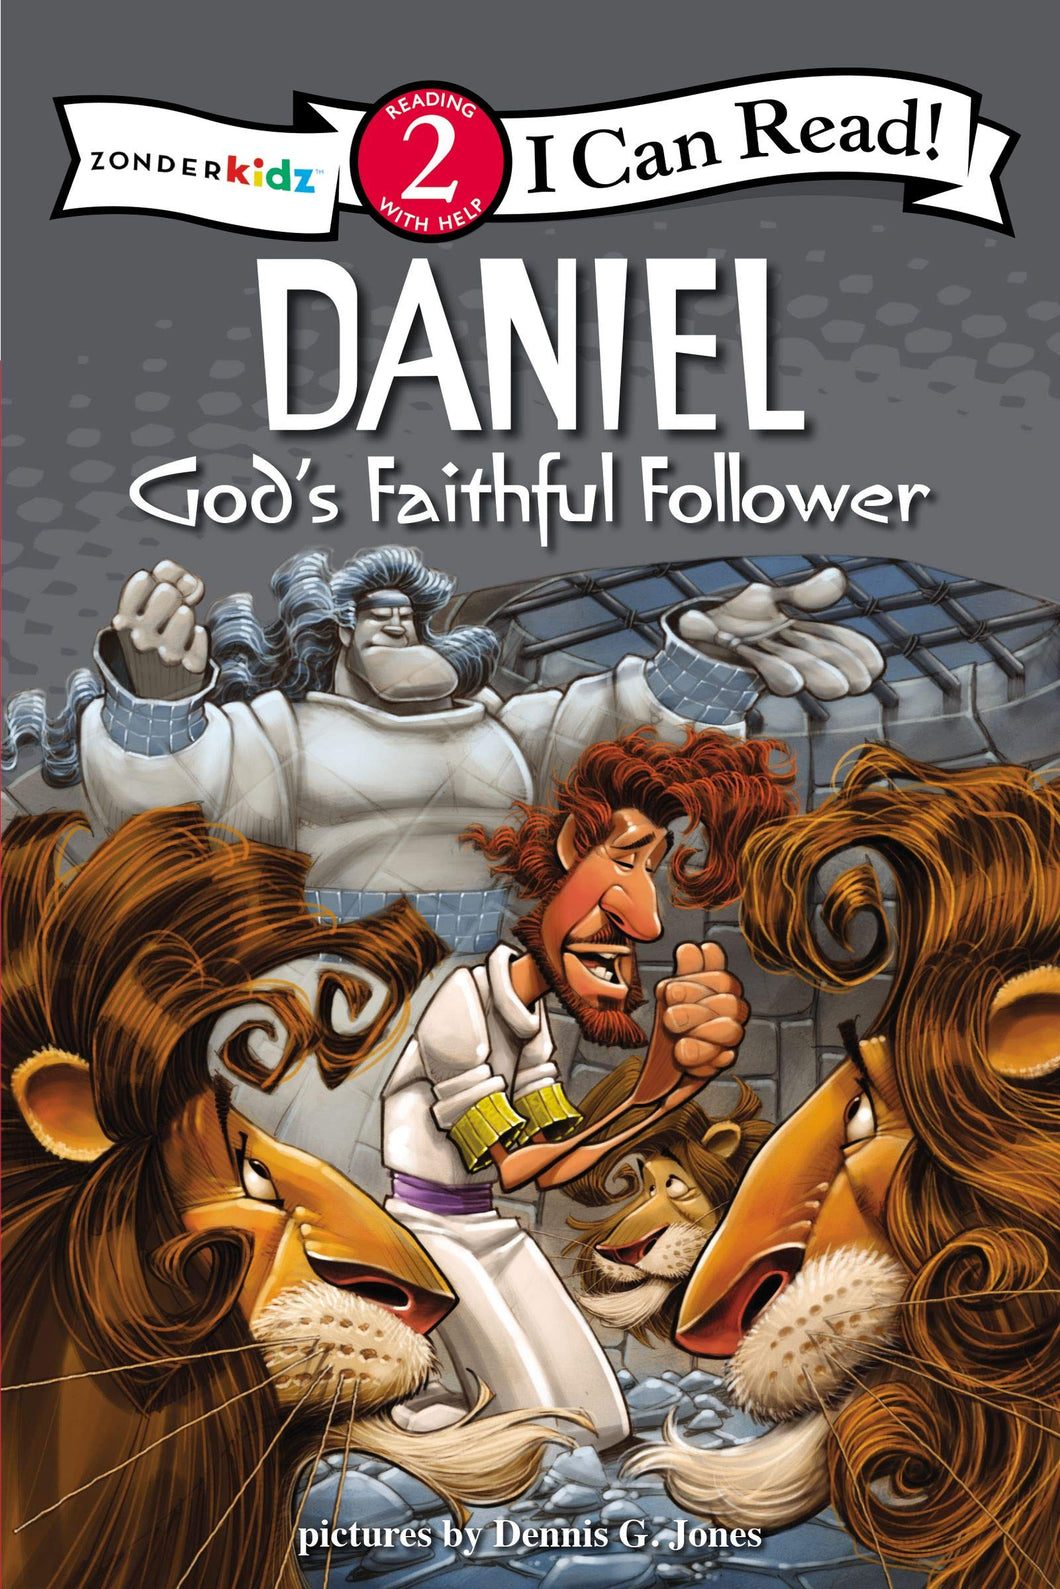 Daniel God's Faithful Follower